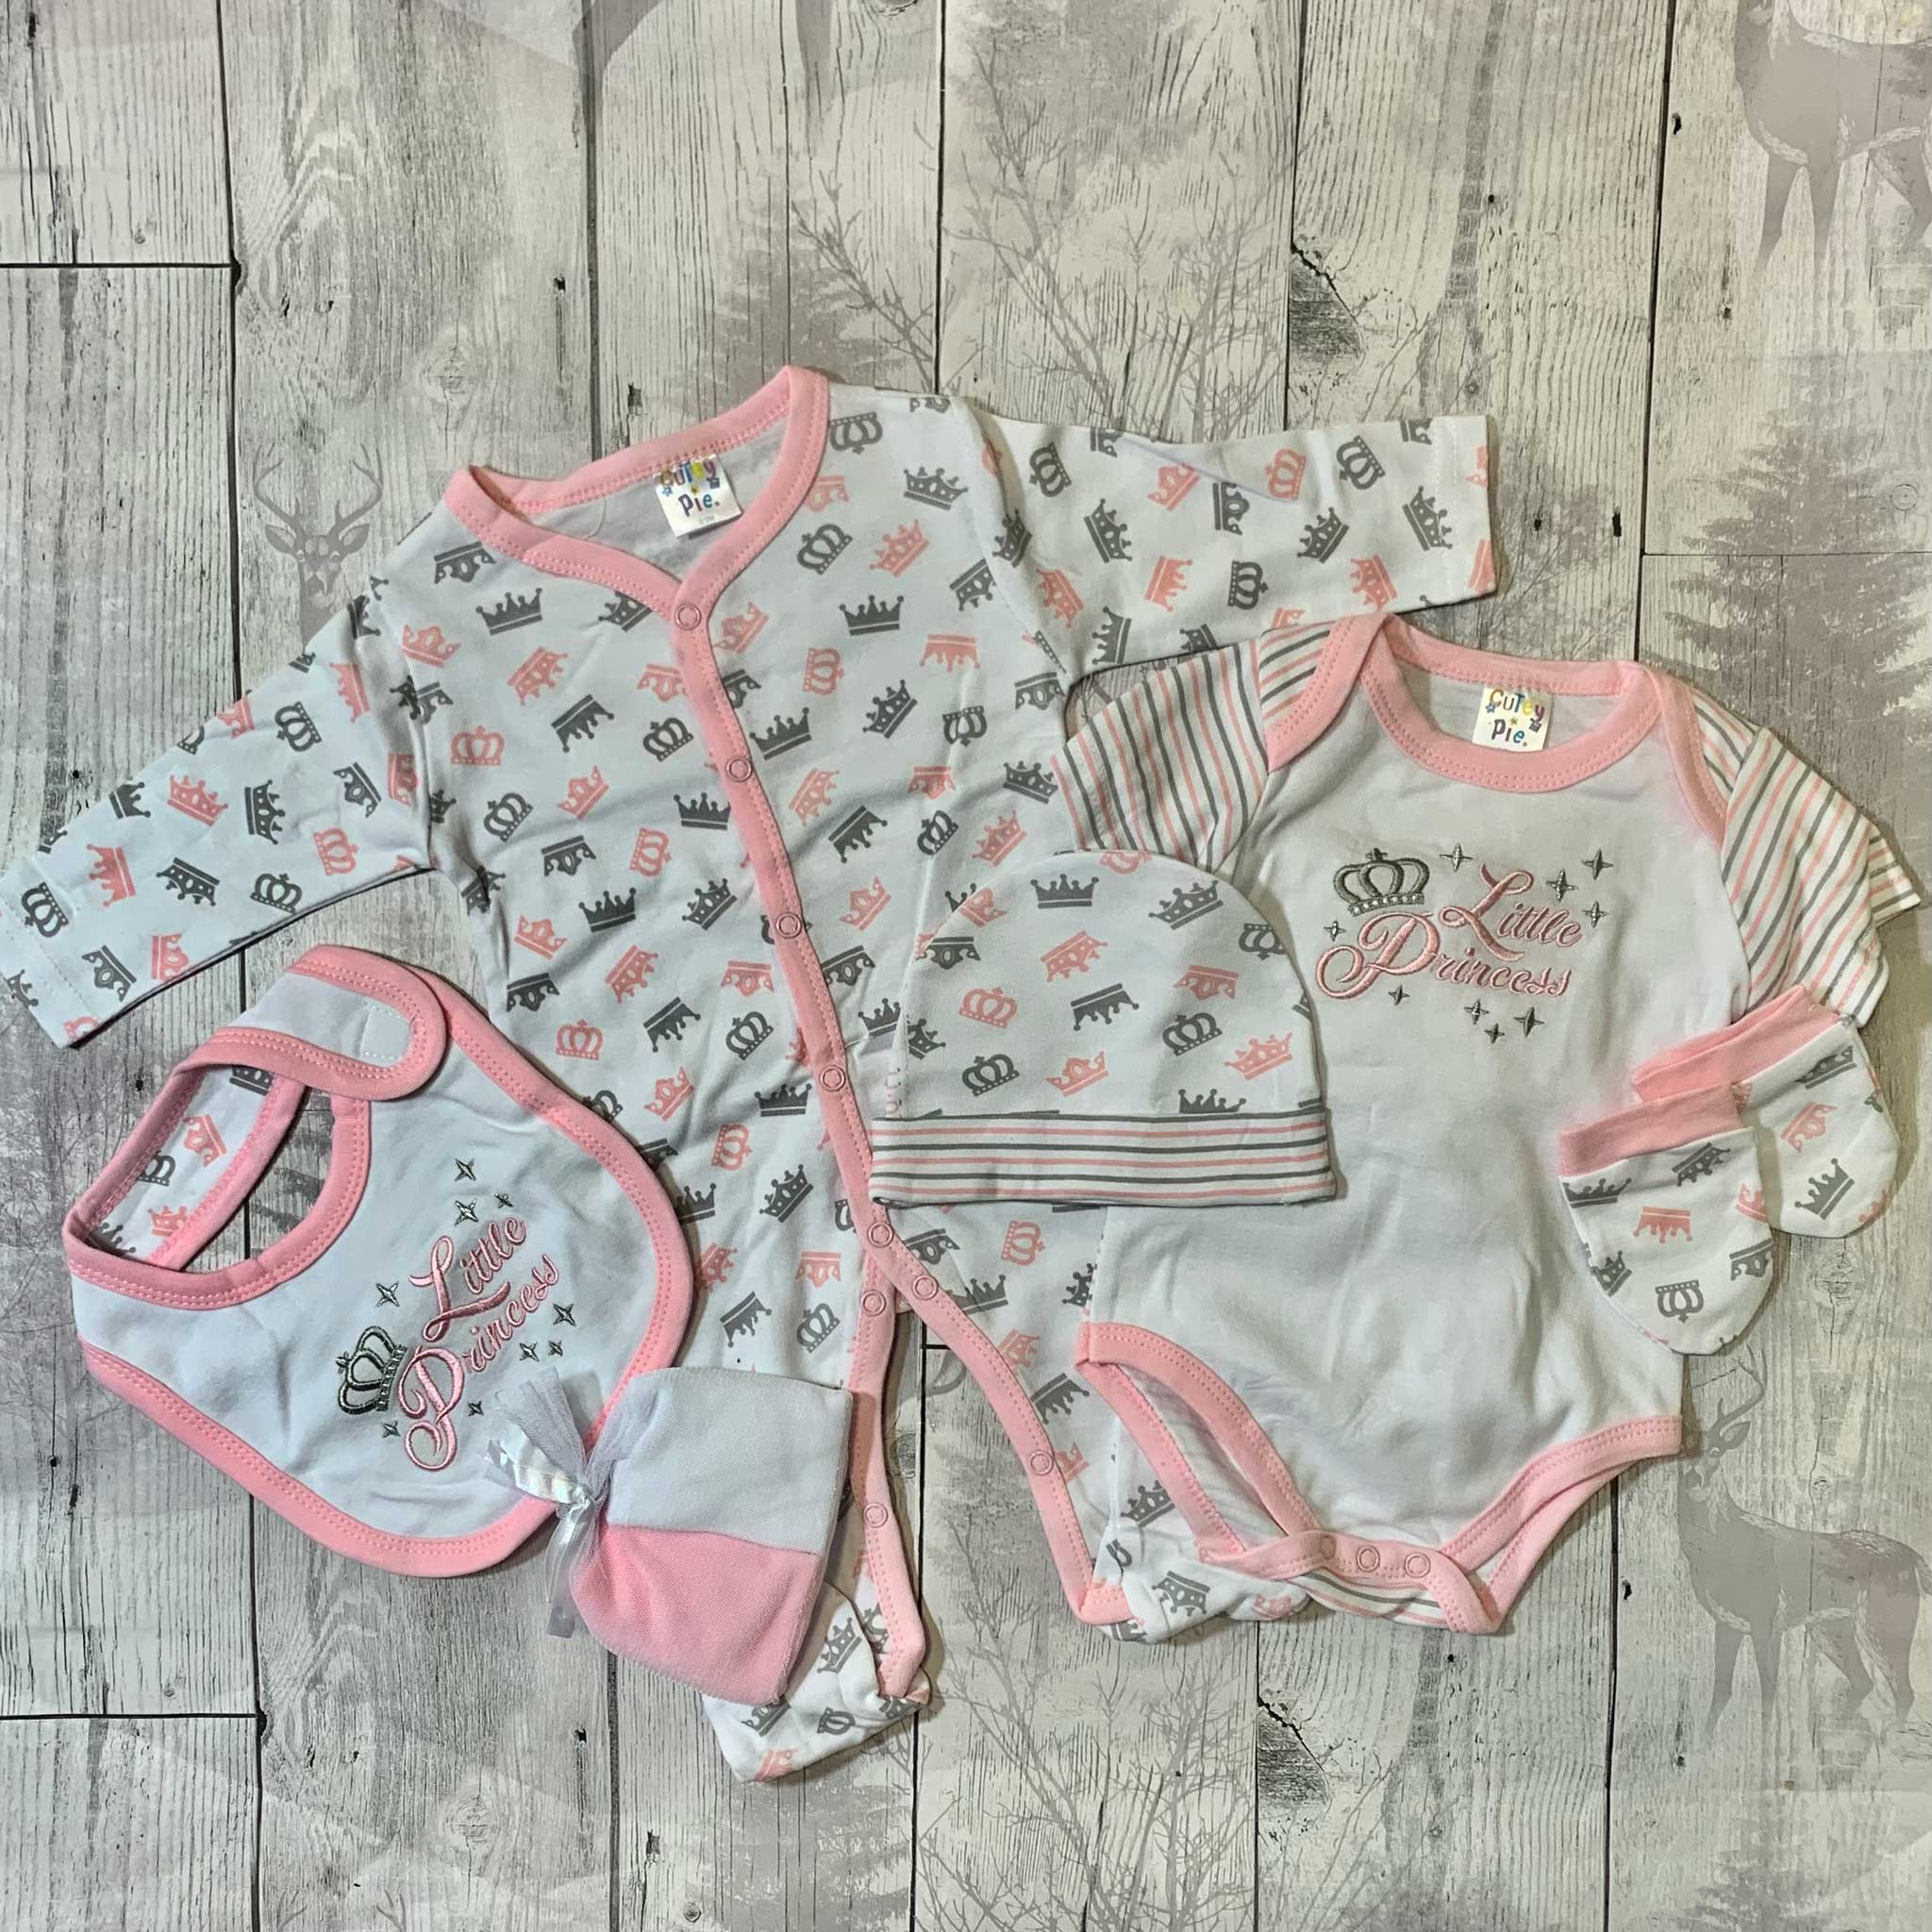 Baby Girls 7 Piece Gift Outfit Set, Sleepsuit, Vest, Hat Mitts and Bib